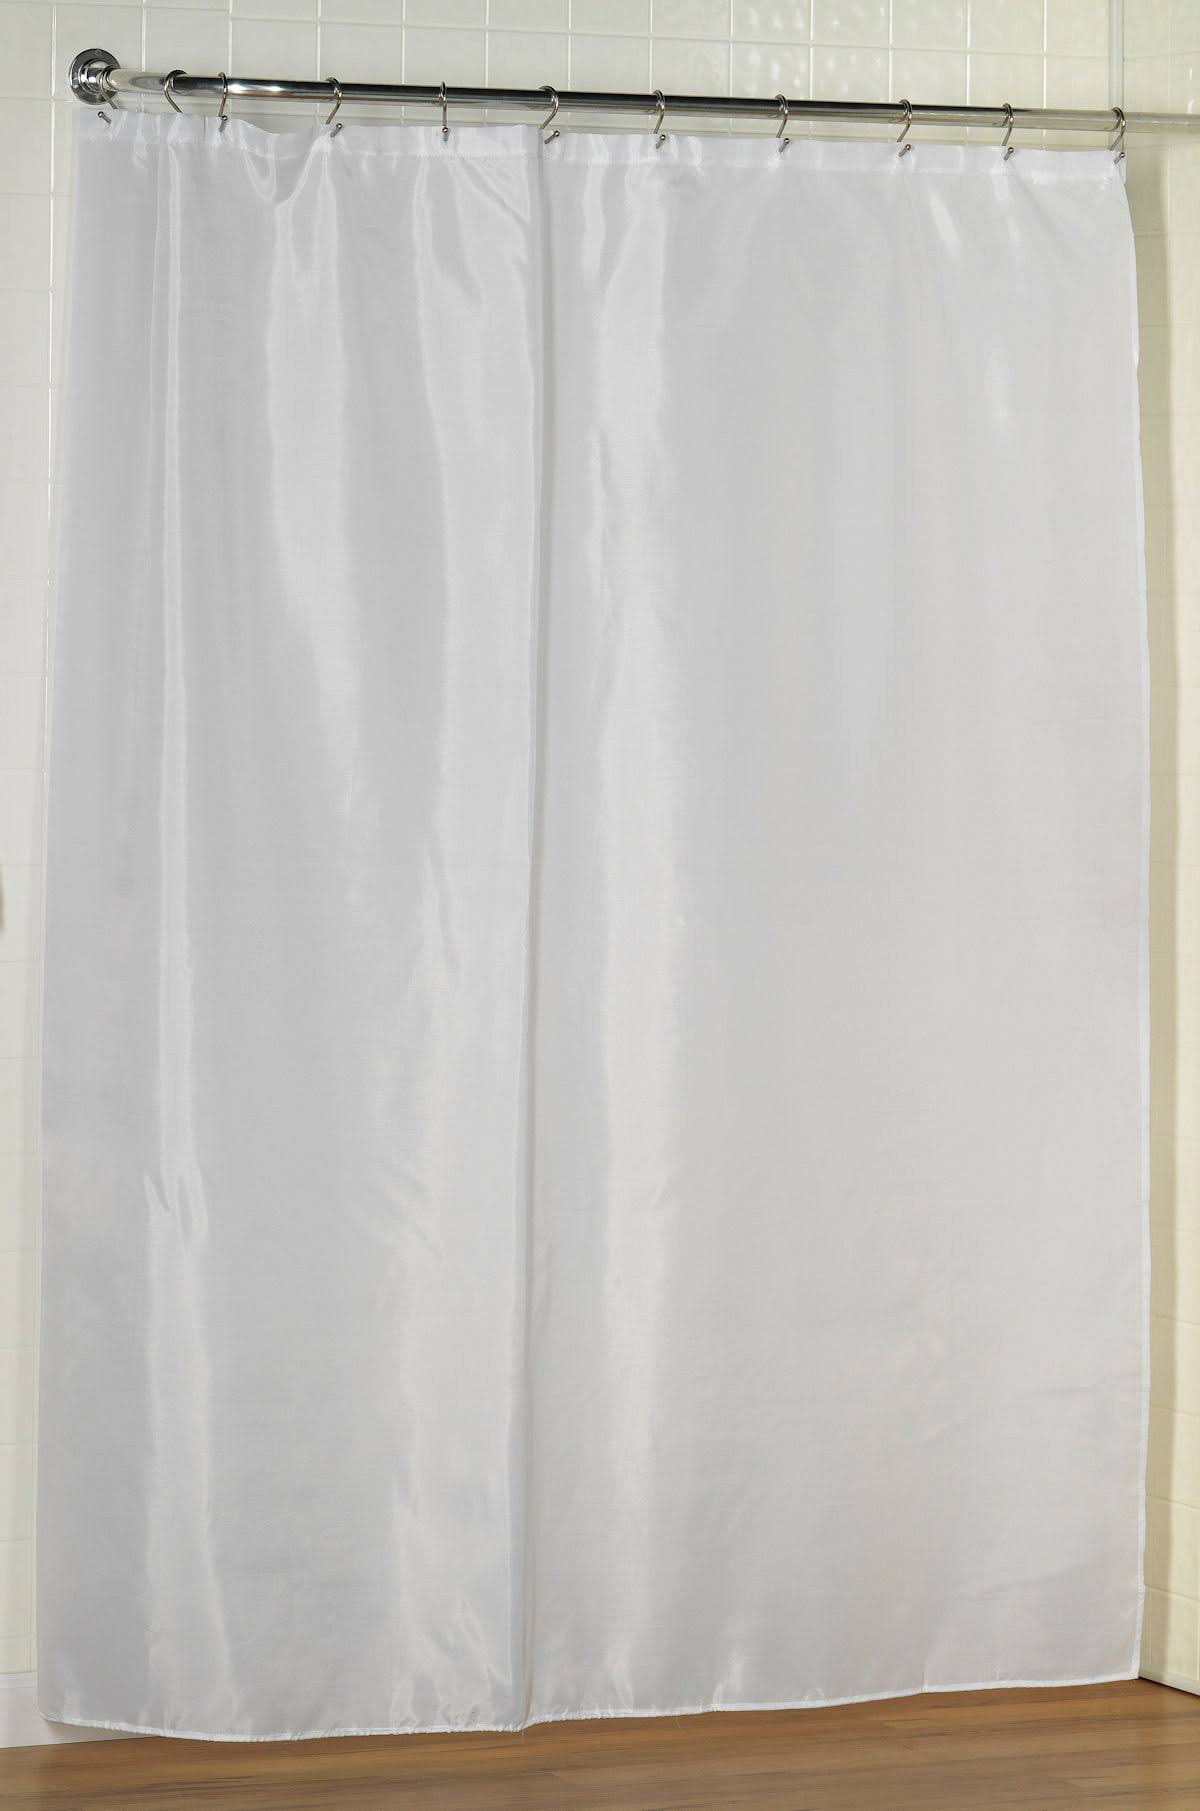 Carnation Home Polyester Fabric Shower Curtain Liner - White